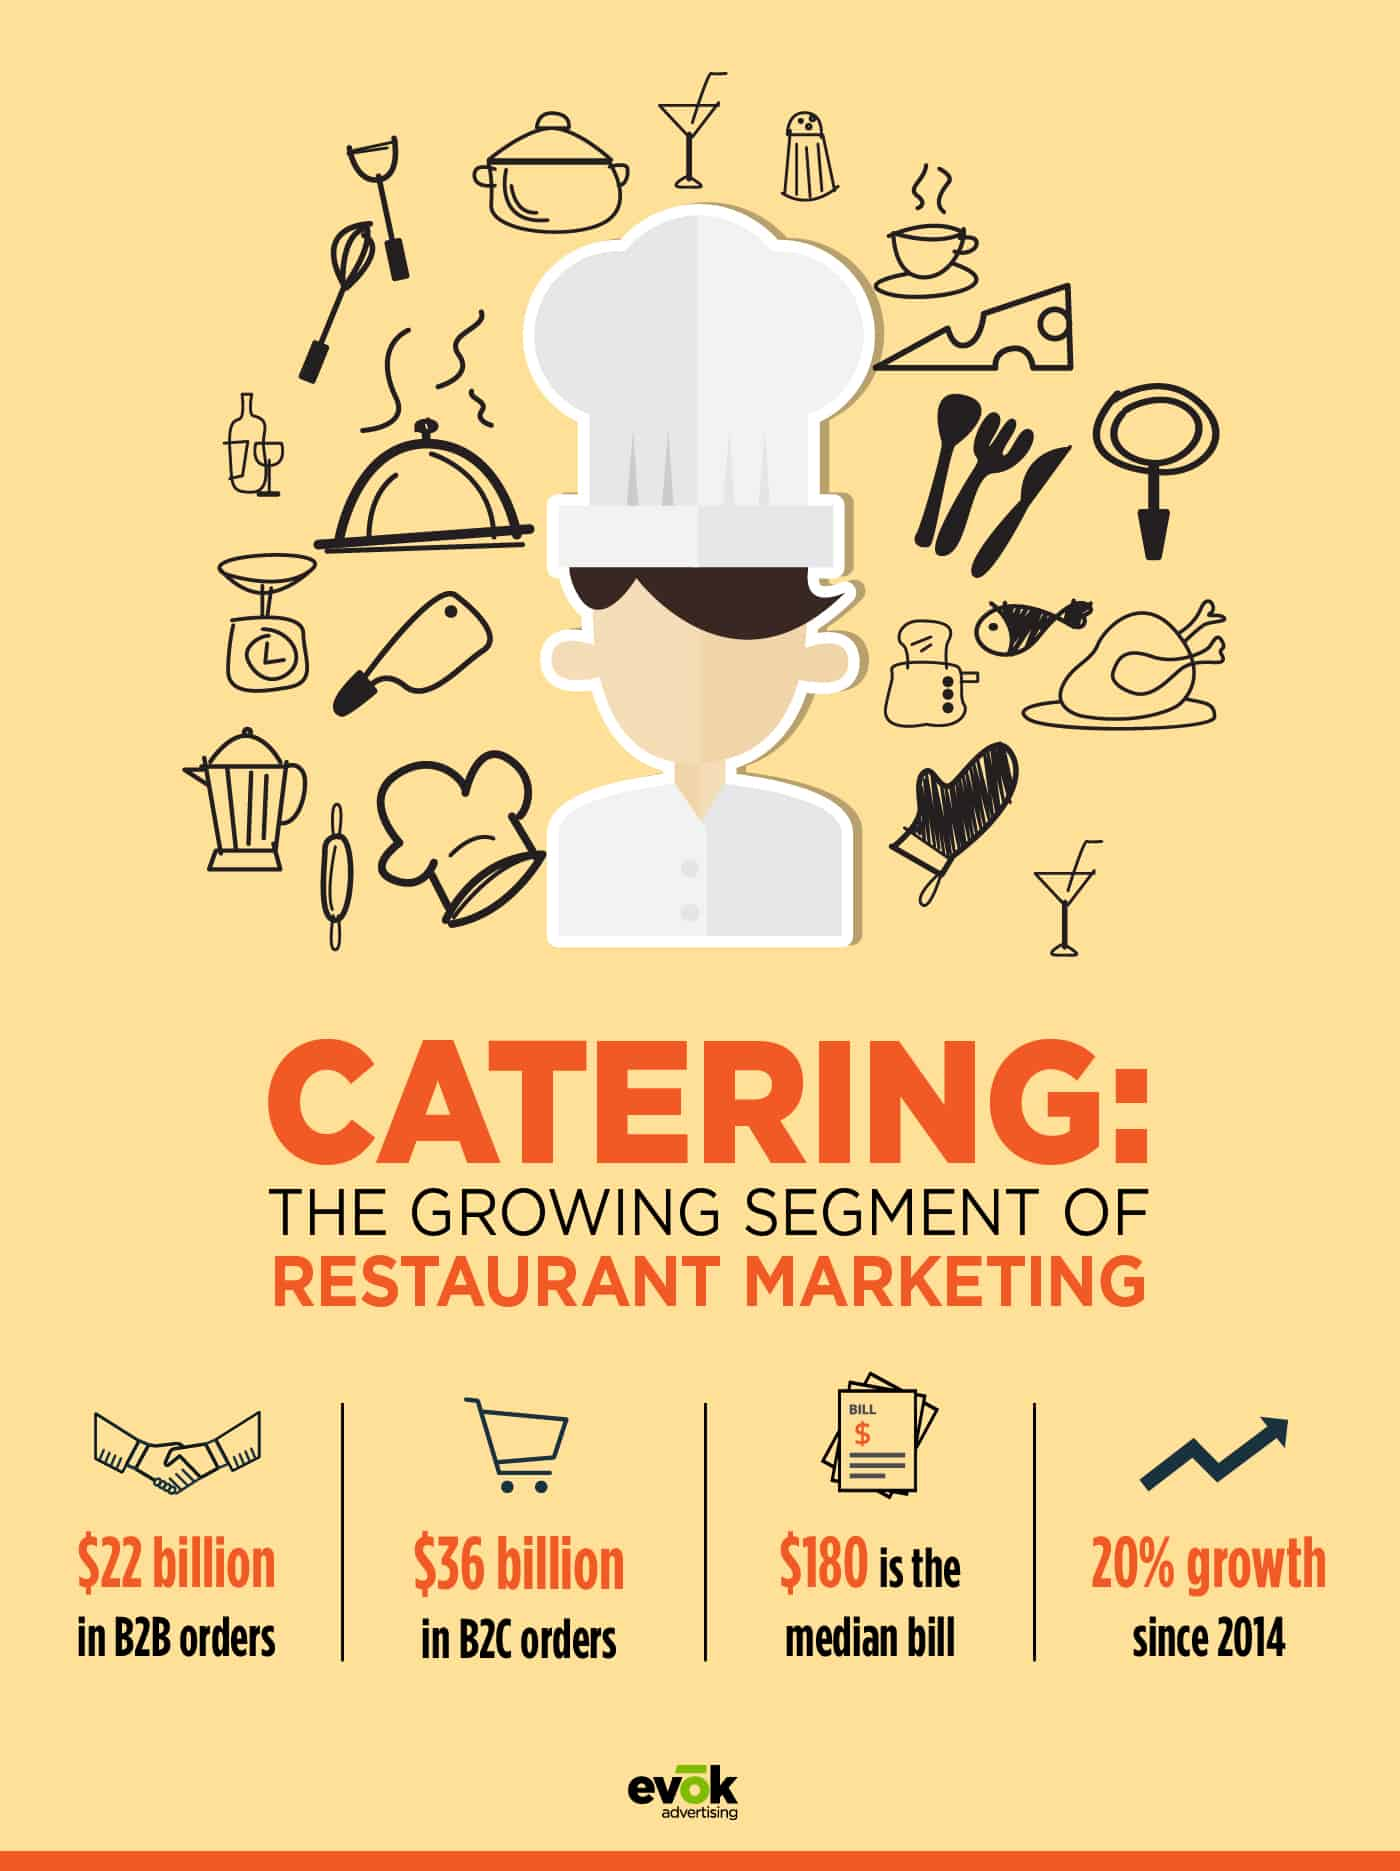 Catering: The Growing Segment of Restaurant Marketing